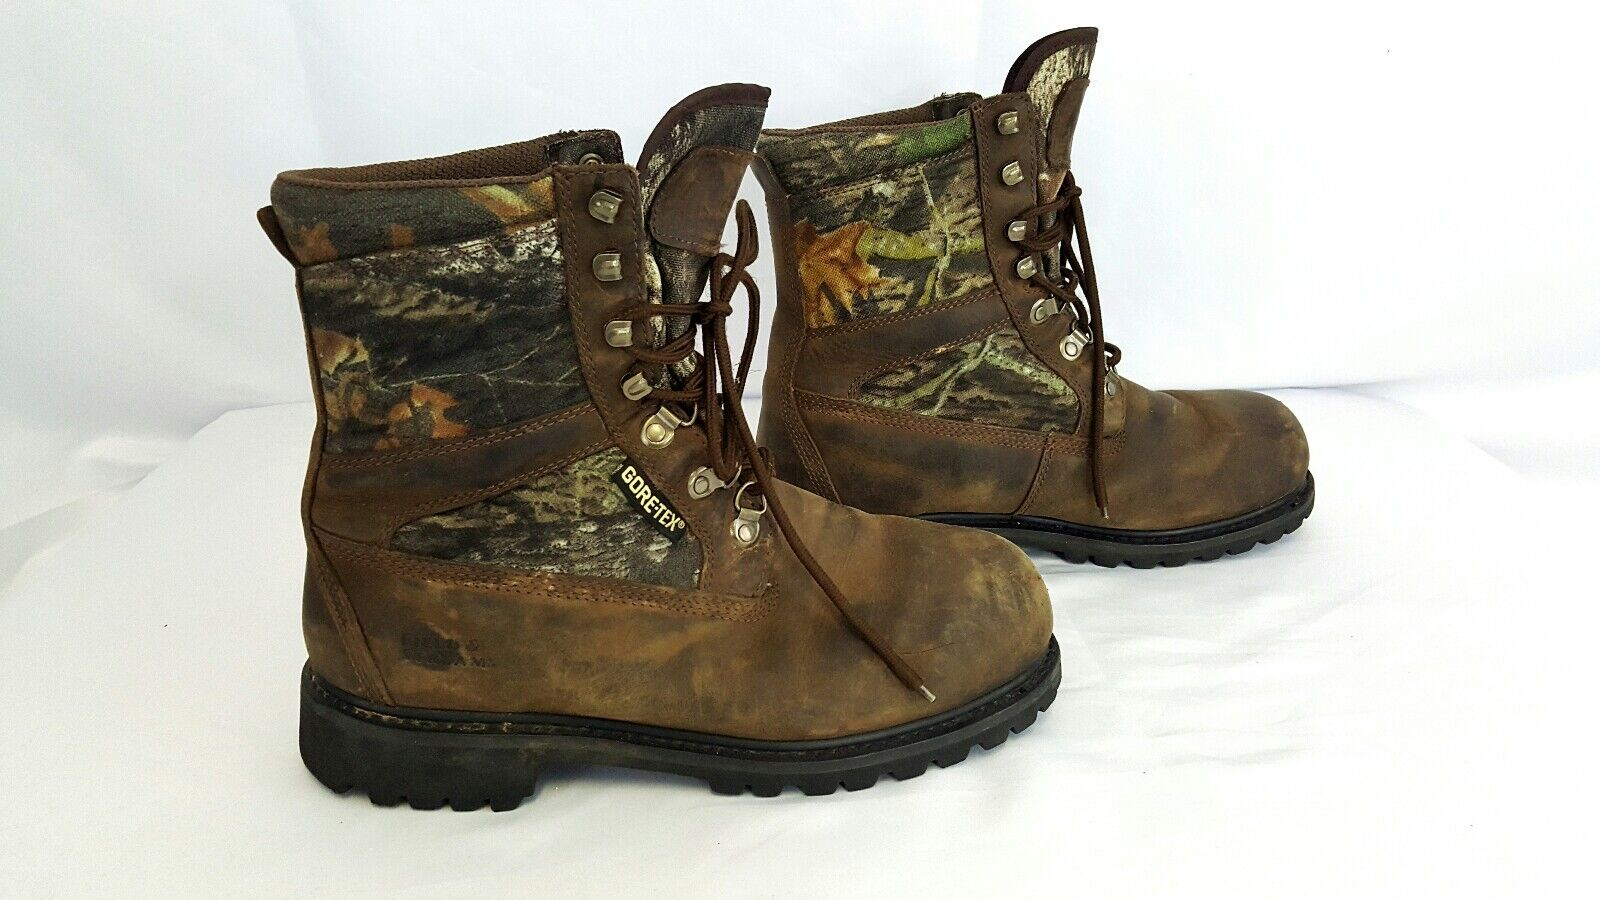 FIELD & STREAM THINSULATE GORE-TEX WATERPROOF HUNTING HIKING WINTER BOOTS 10.5